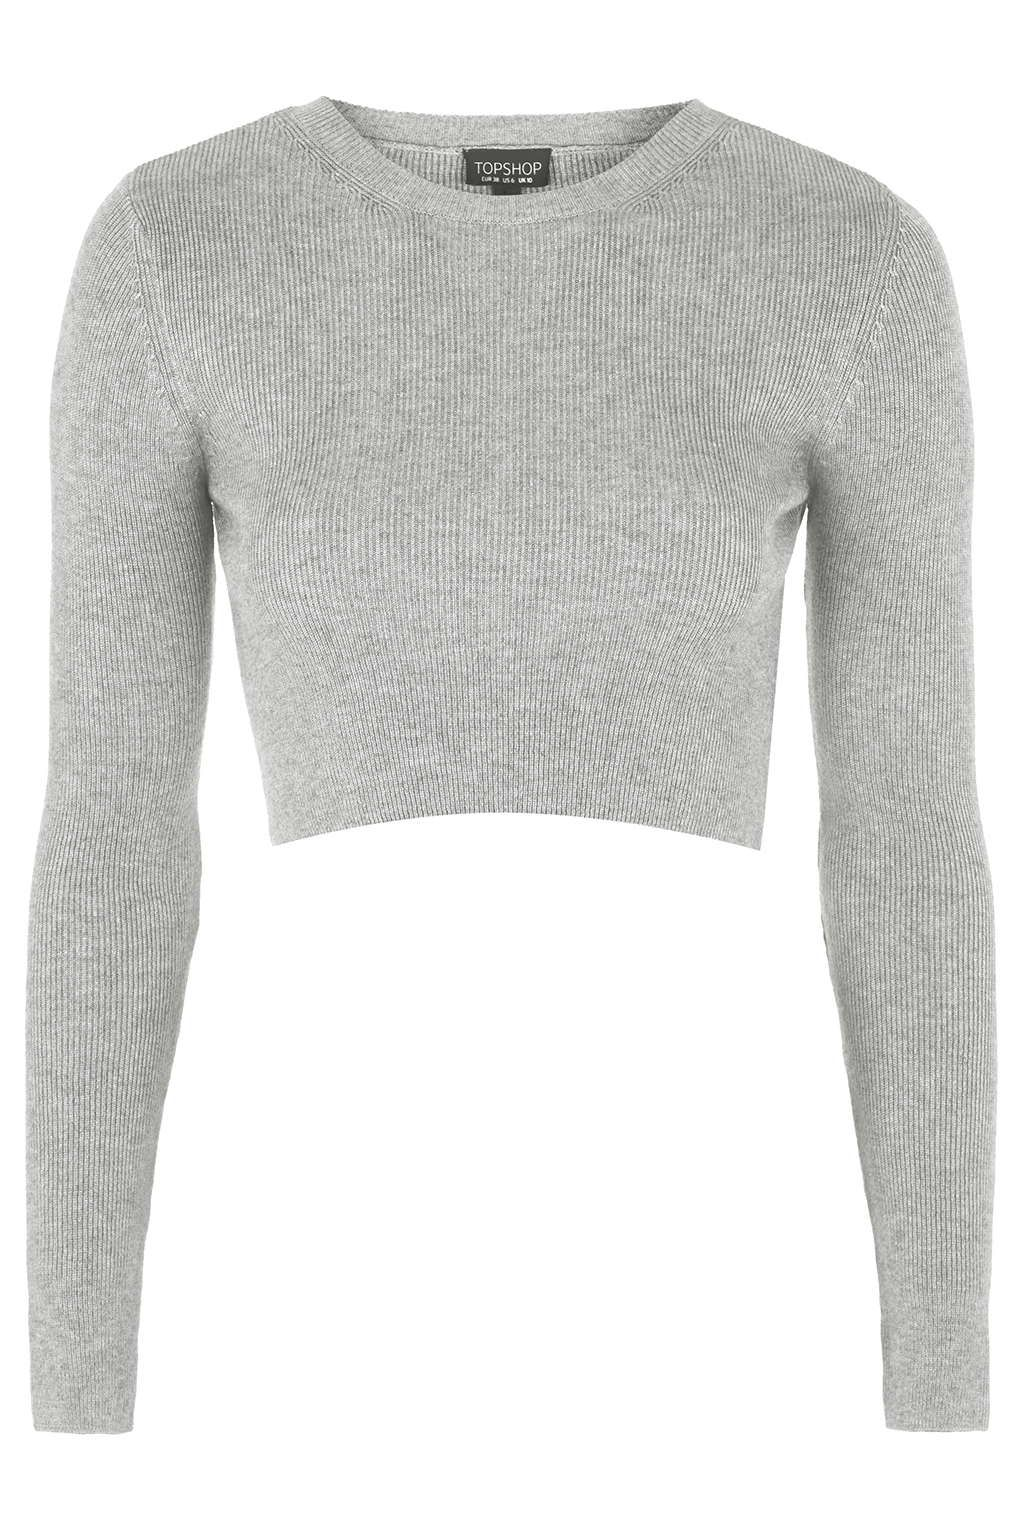 buy separation shoes biggest discount Photo 1 of Ribbed Crew Neck Cropped Jumper | Cropped sweater ...